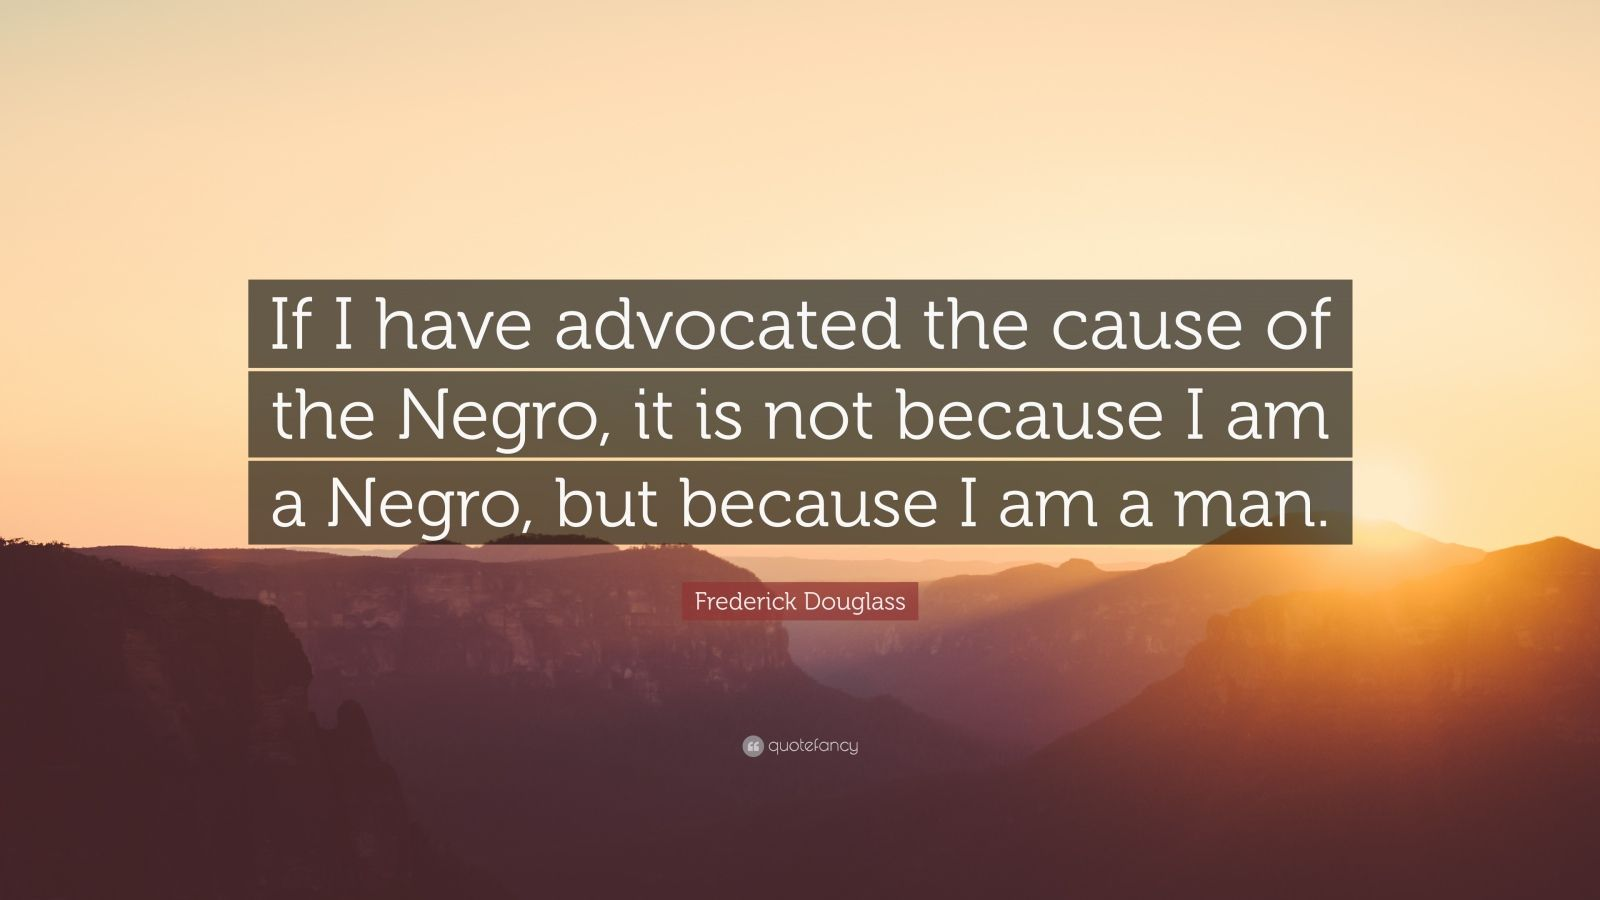 """Frederick Douglass Quote: """"If I have advocated the cause of the Negro, it is not because I am a Negro, but because I am a man."""""""